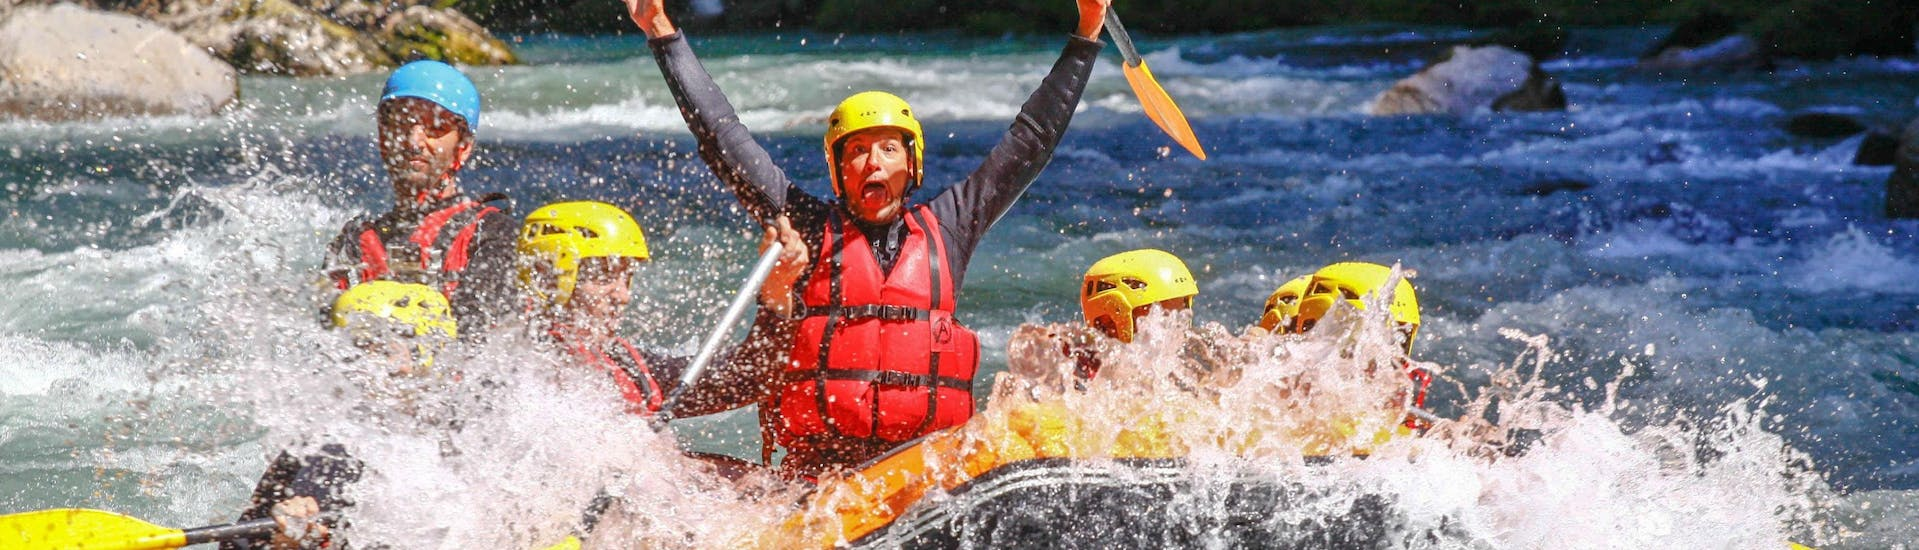 A group of friends is having fun on the Dranse River during a rafting tour with Evolution 2 Aquarafting Lake Geneva.